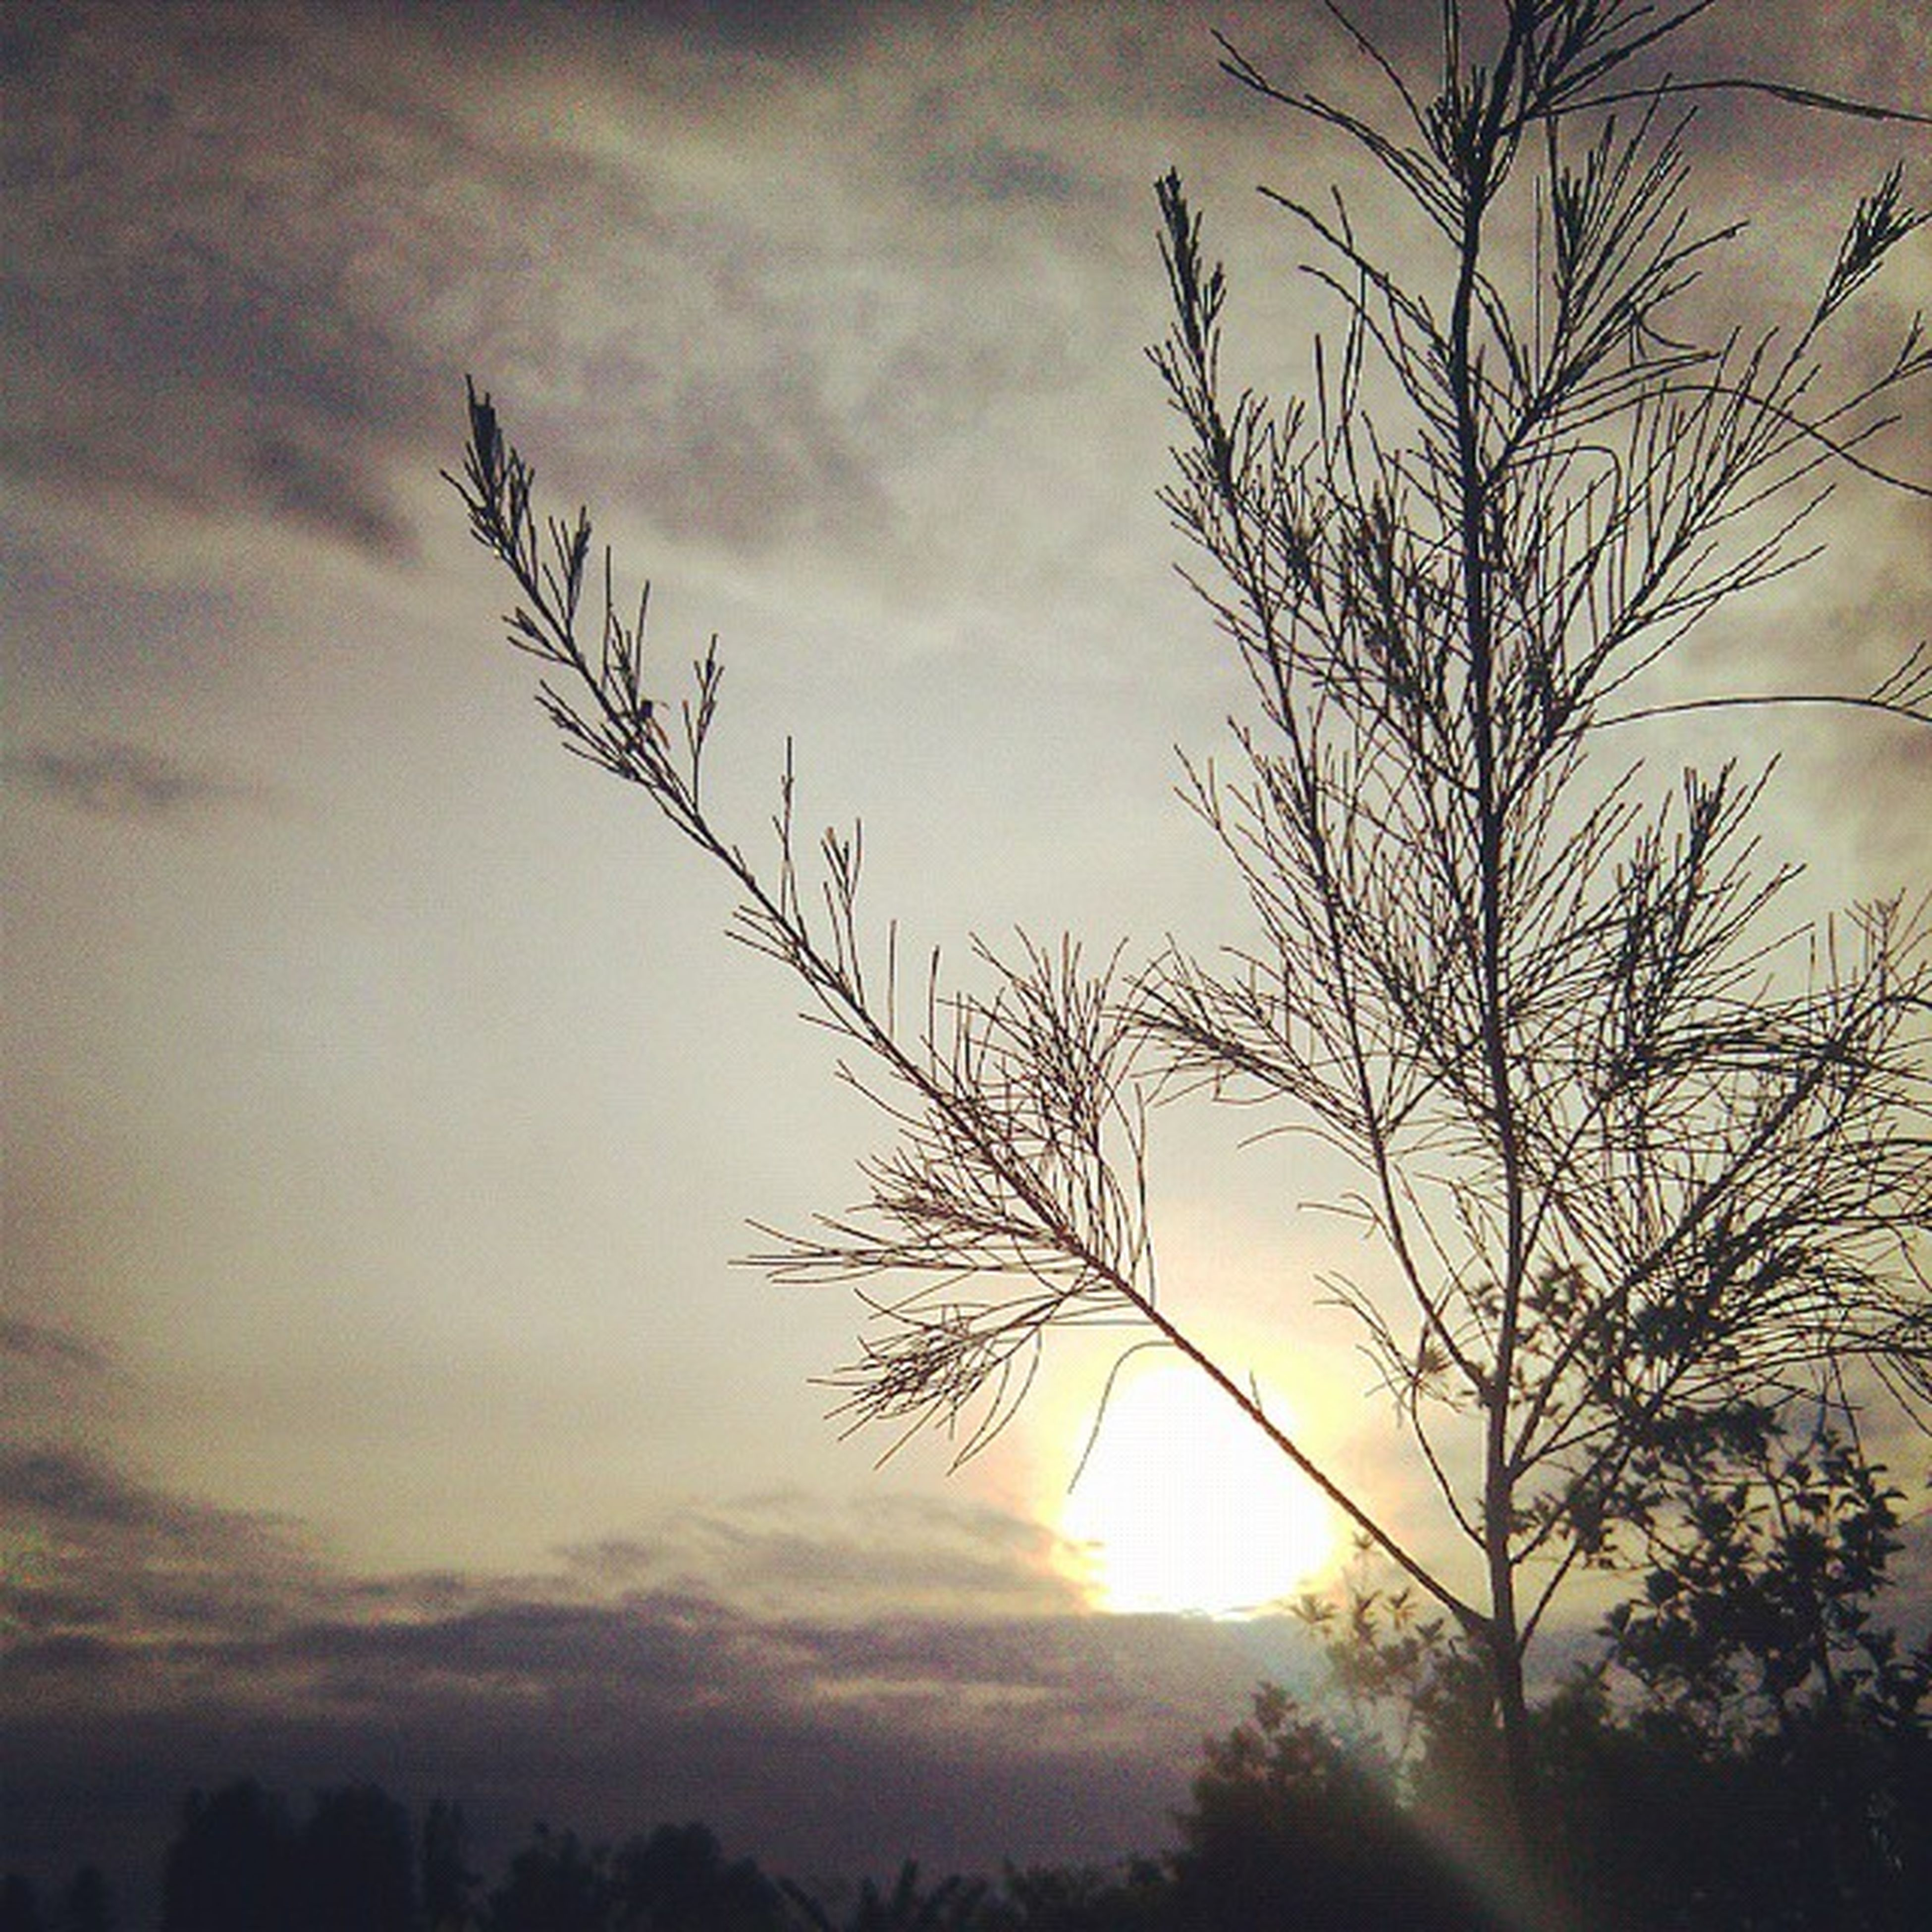 sunset, silhouette, sky, tranquility, bare tree, tranquil scene, sun, scenics, beauty in nature, nature, cloud - sky, tree, branch, landscape, idyllic, cloud, growth, sunlight, field, outdoors